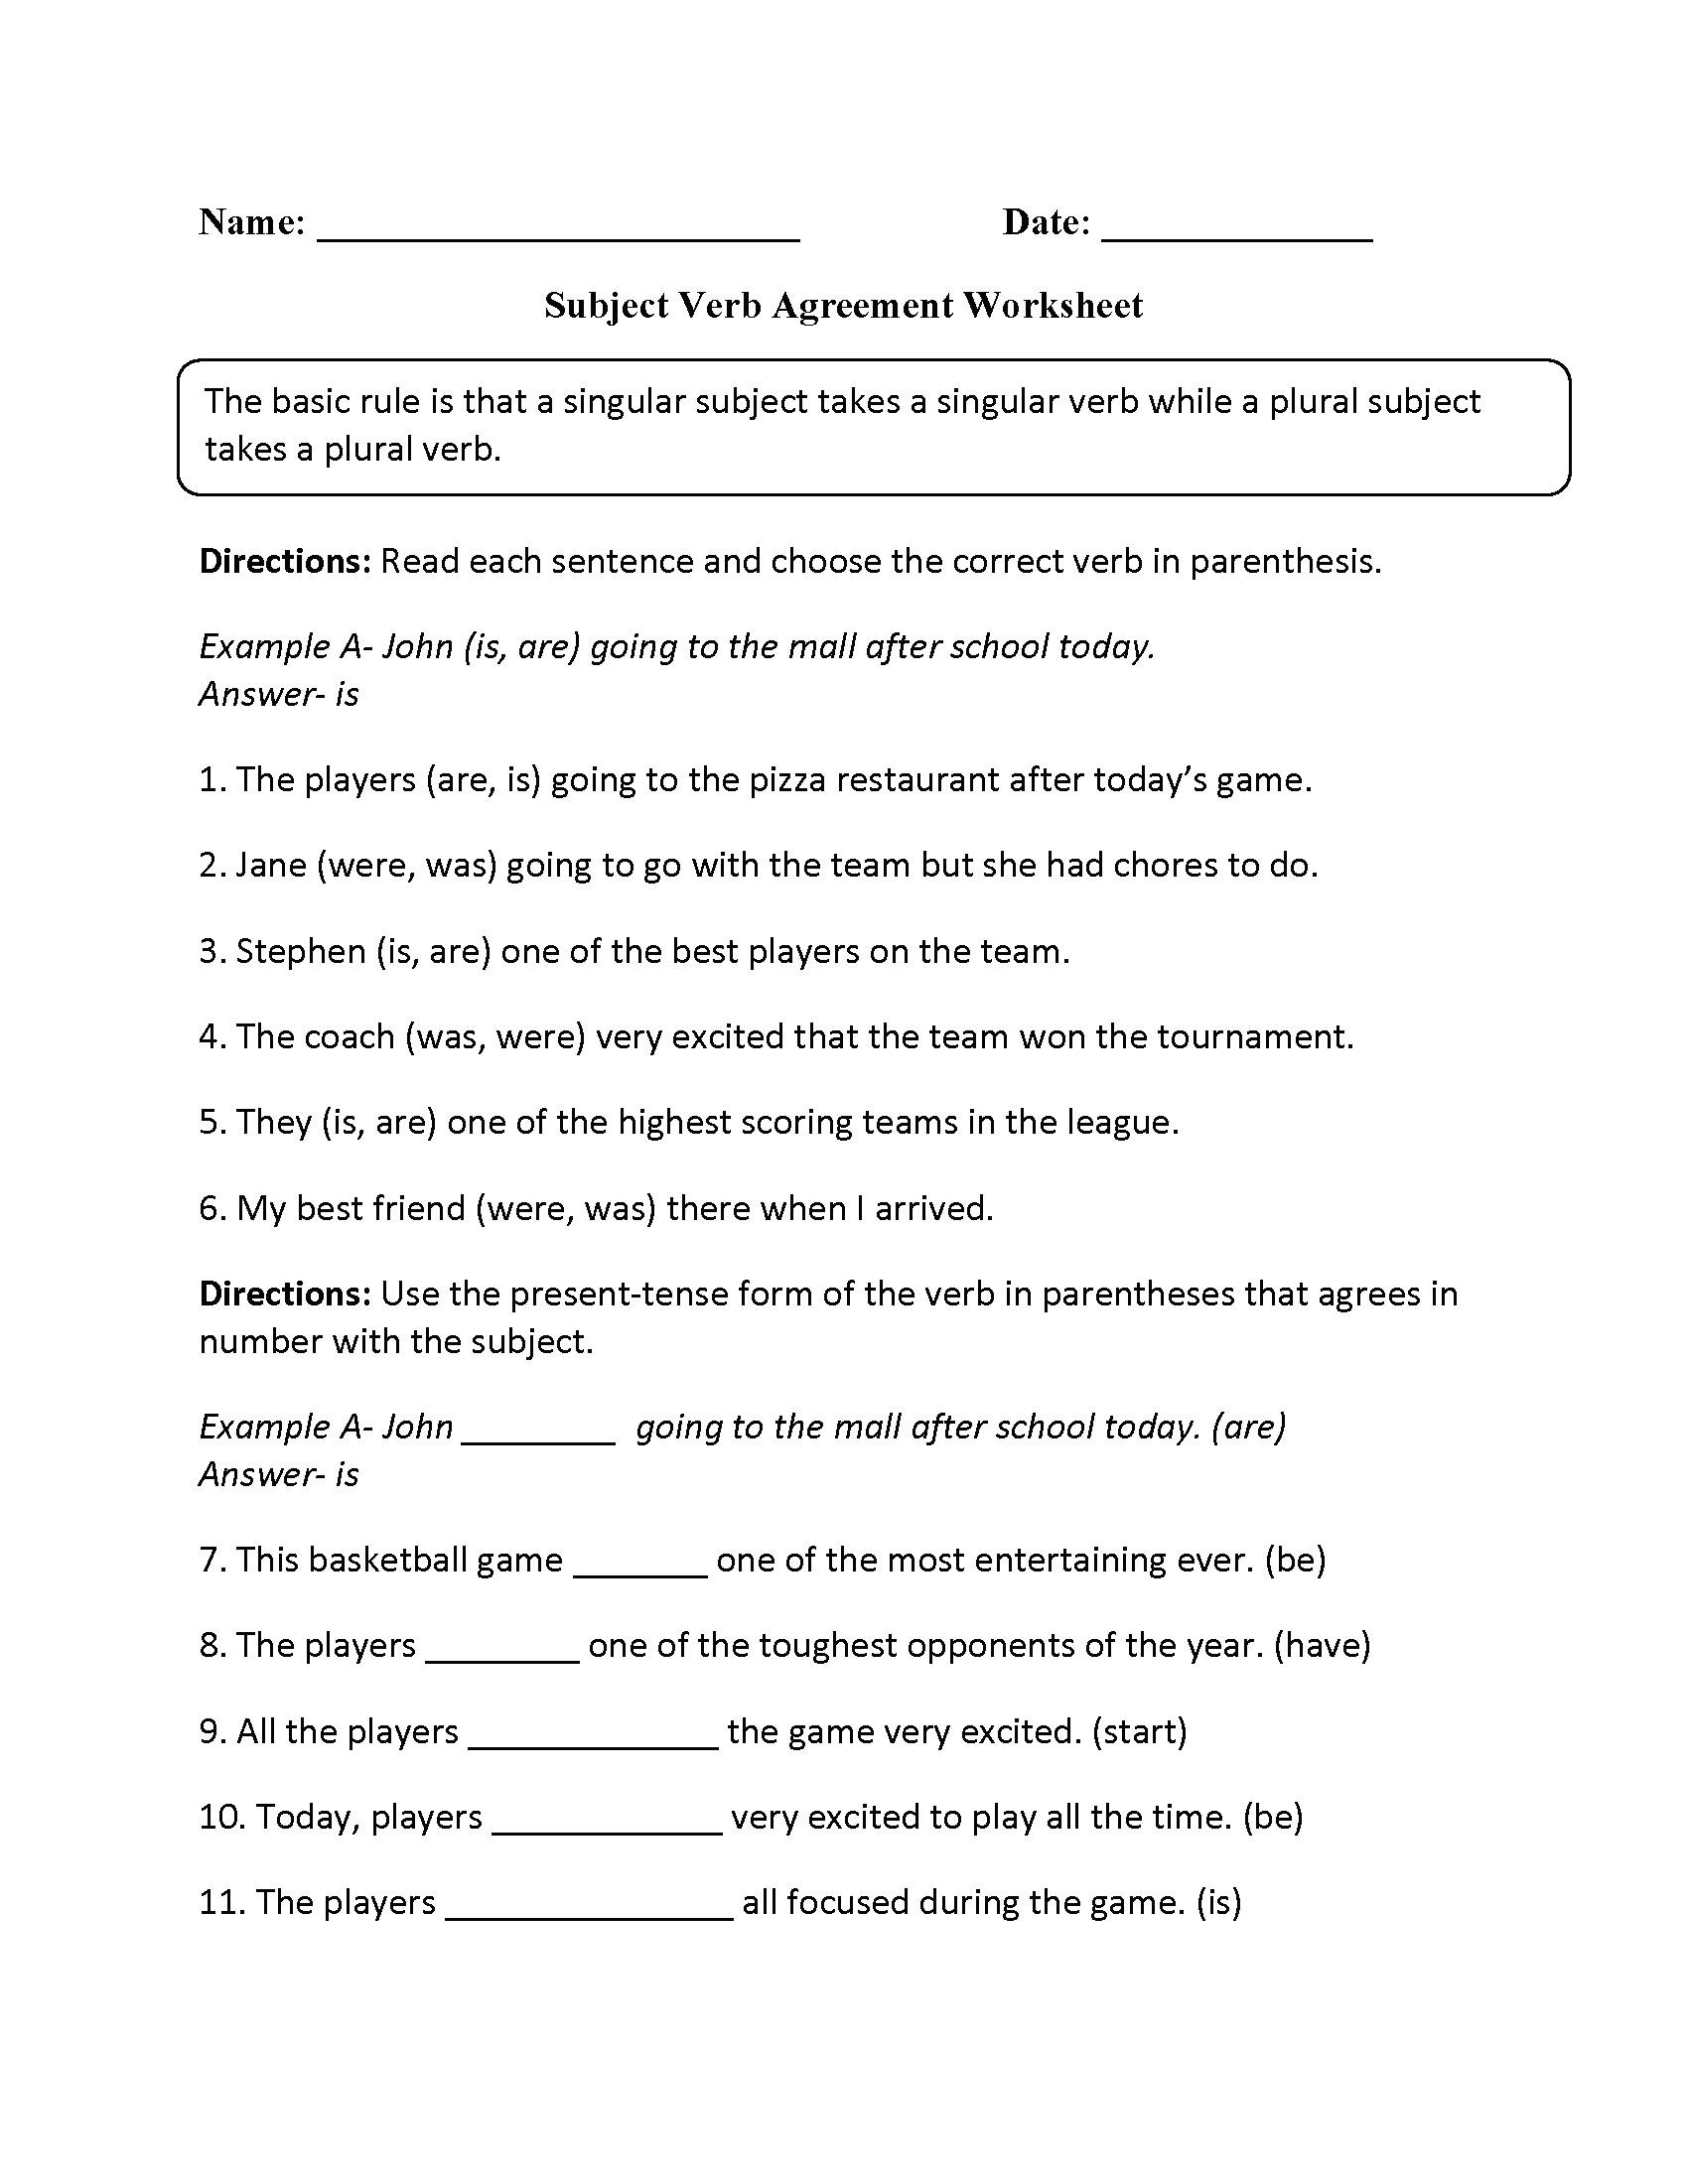 English Worksheets for 8th Grade English Grammar Worksheets for Grade 8 Pdf لم يسبق له Ù…Ø ÙŠÙ""